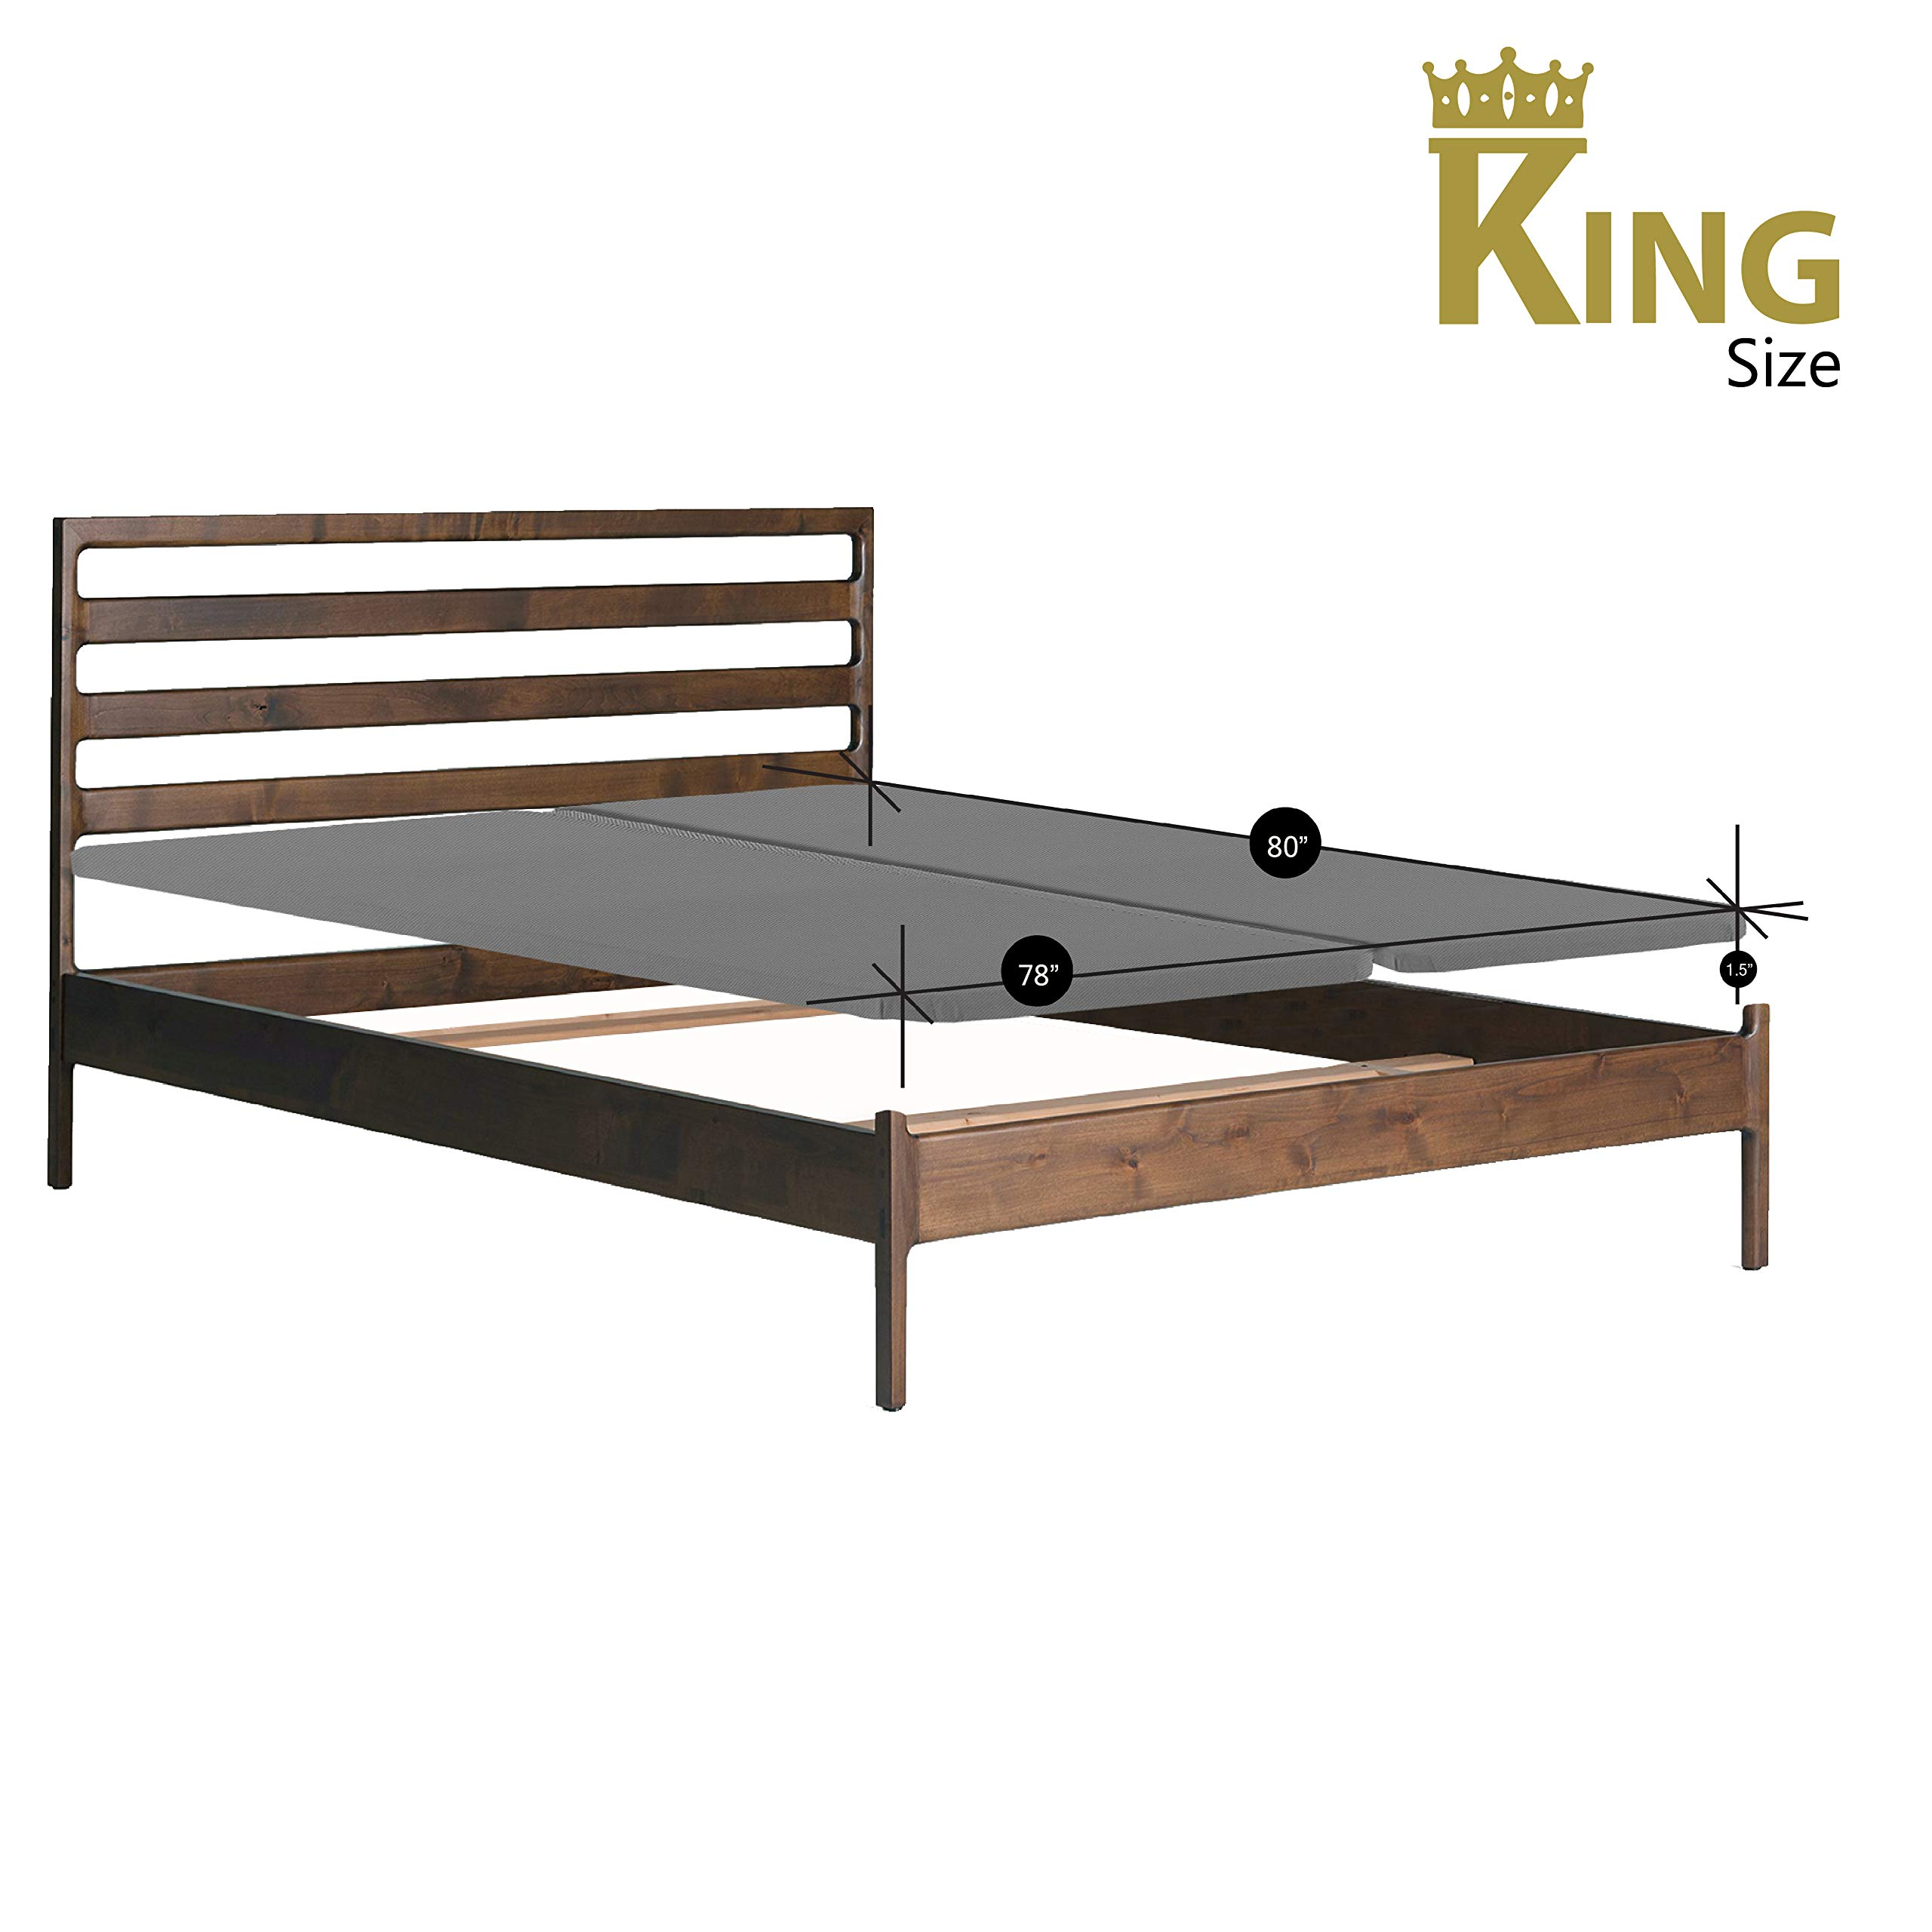 Continental Sleep, 2-Inch Fully Assembled Split Foundation Bunkie Board, |King Size| (2 halves Included) by Mattress Comfort (Image #2)